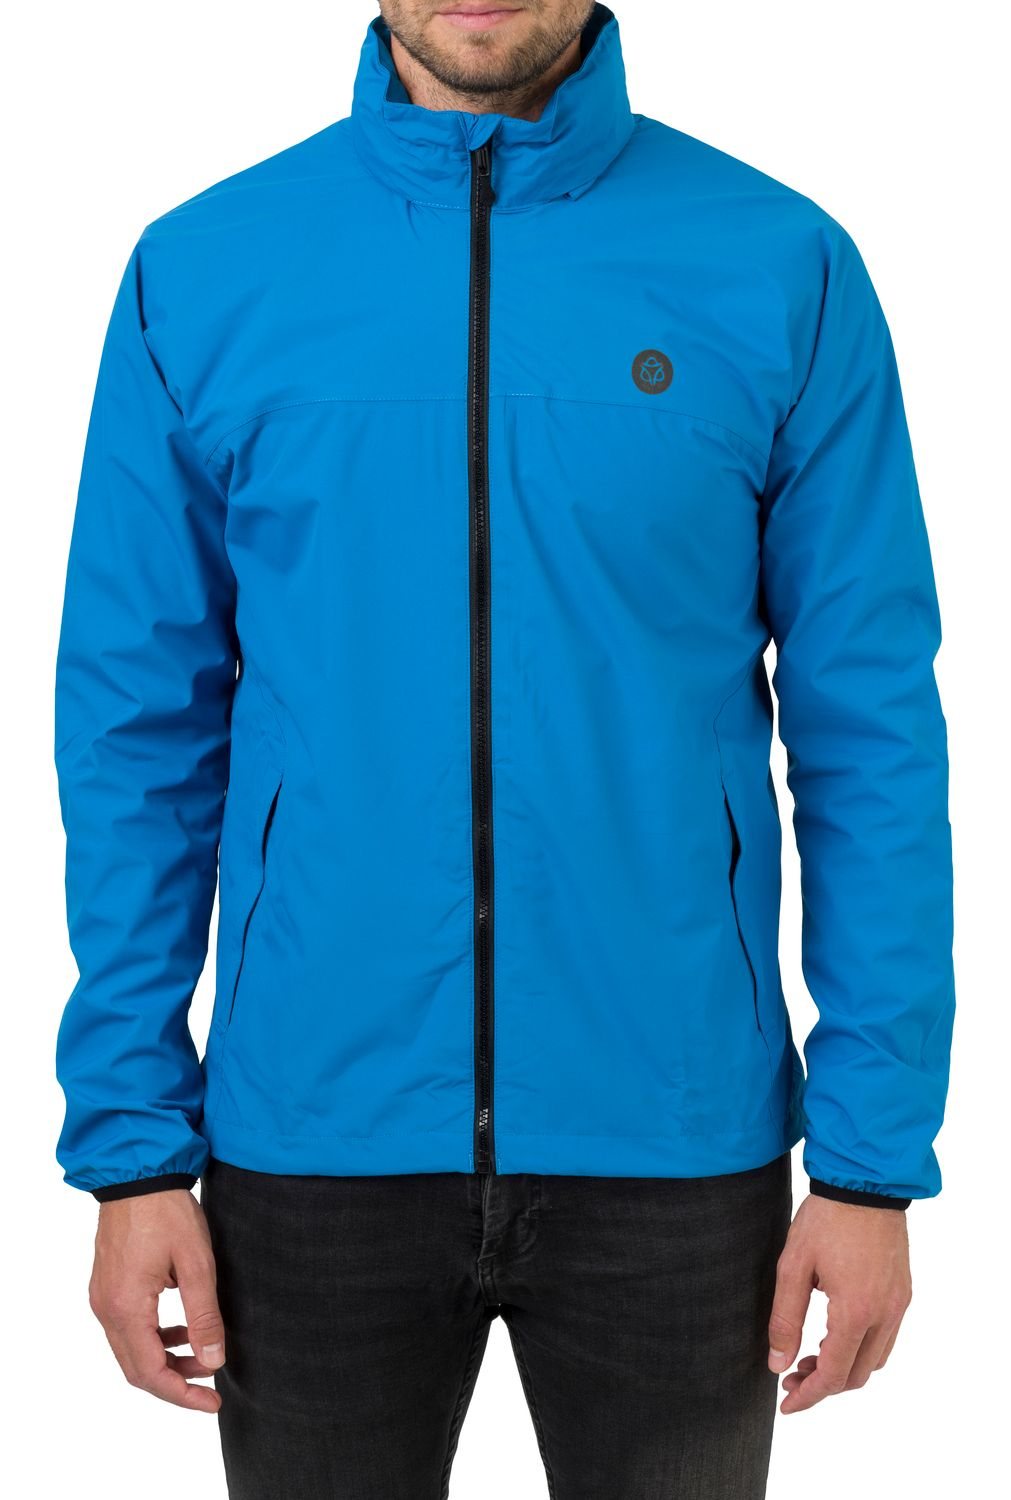 GO Rain Jacket Essential fit example